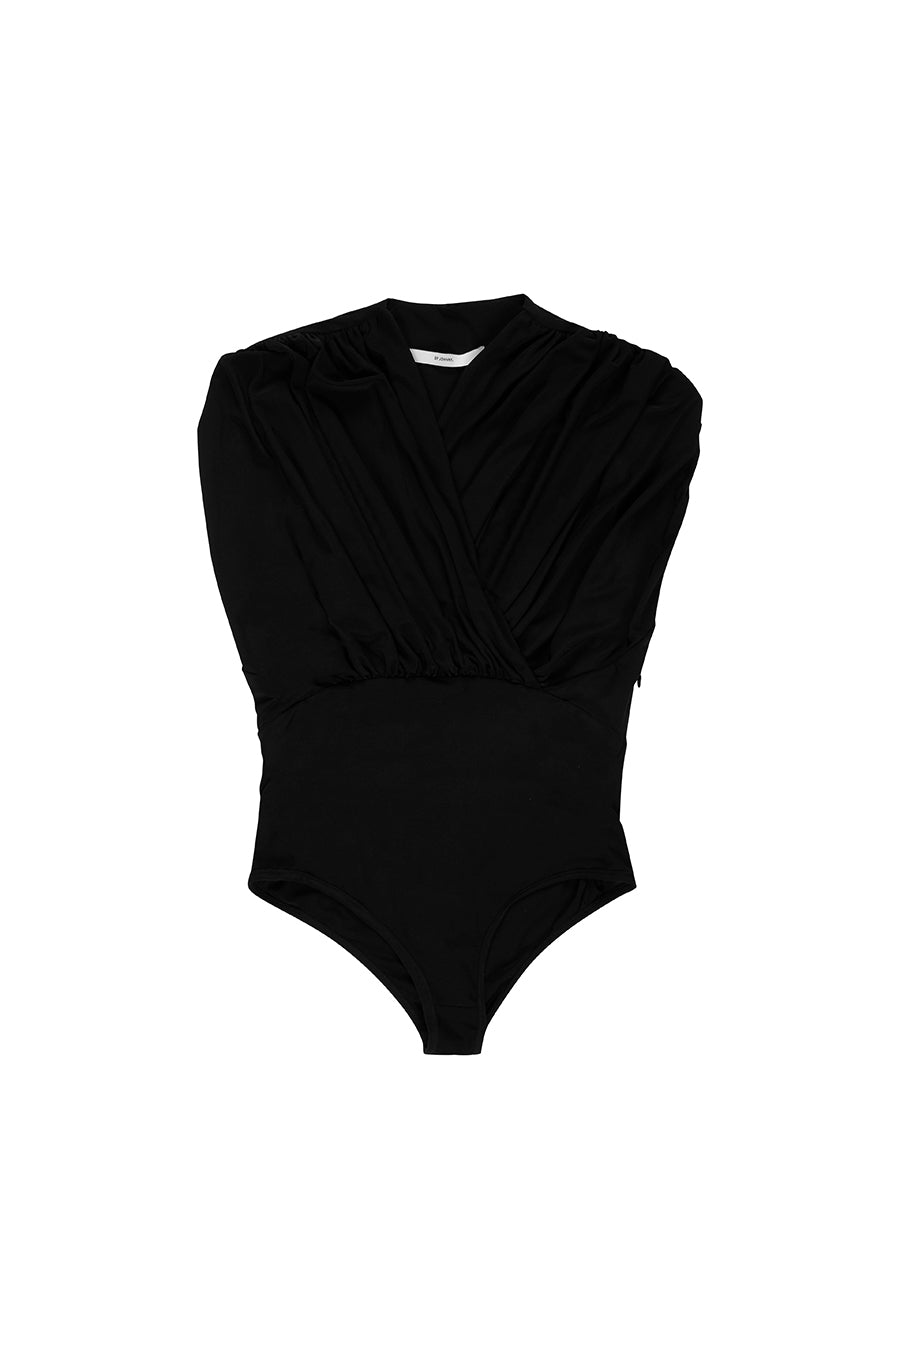 BY JOHNNY GATHERED V BODY SUIT - BLACK